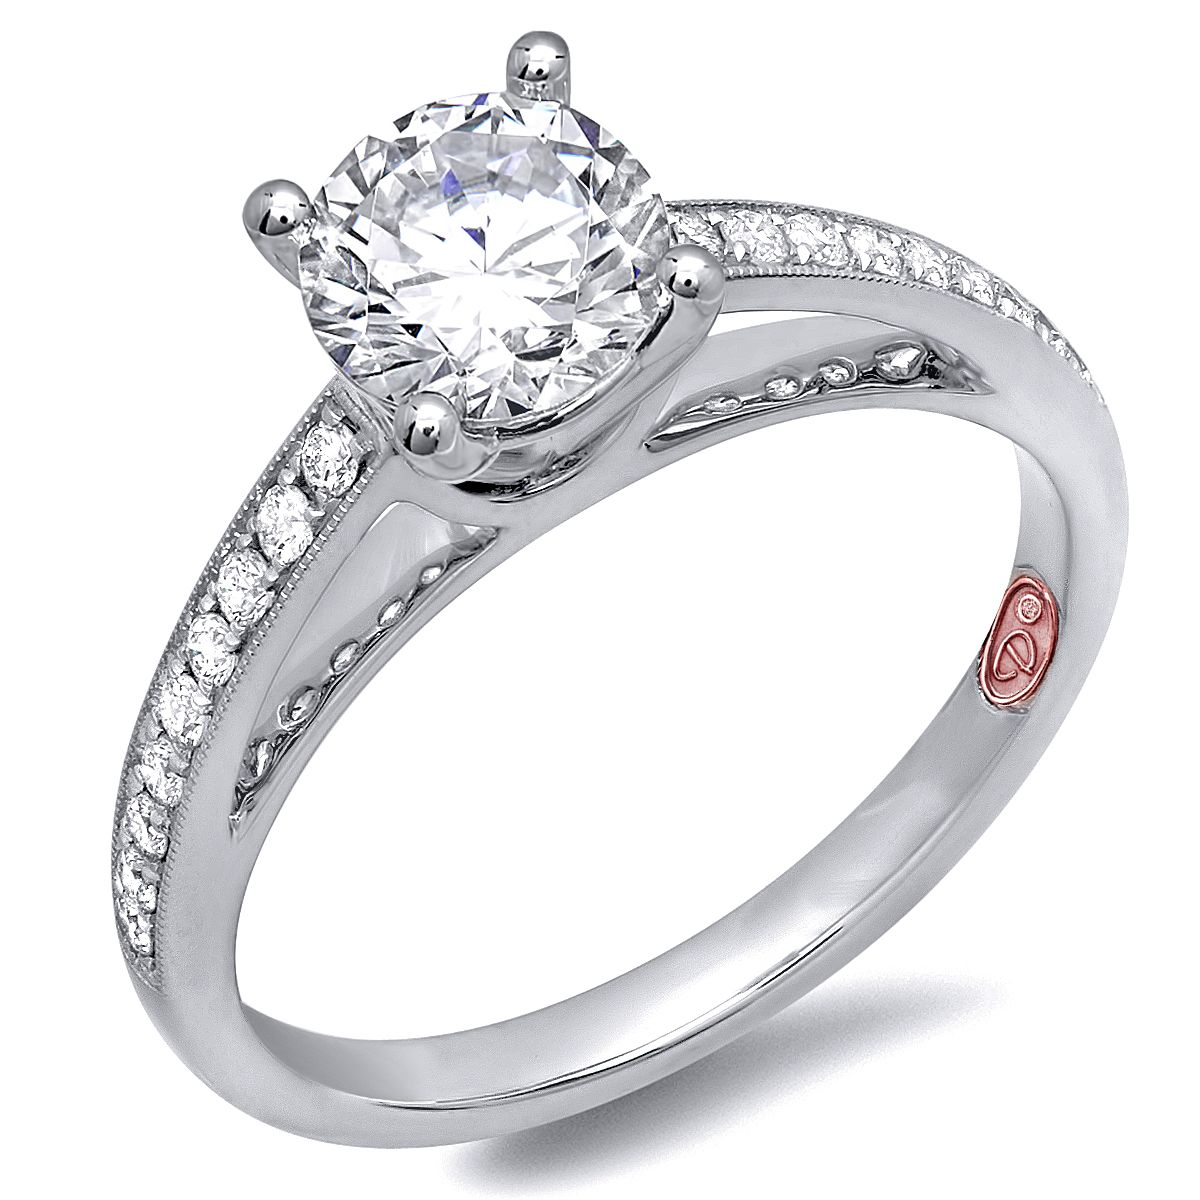 Designer Engagement Rings from